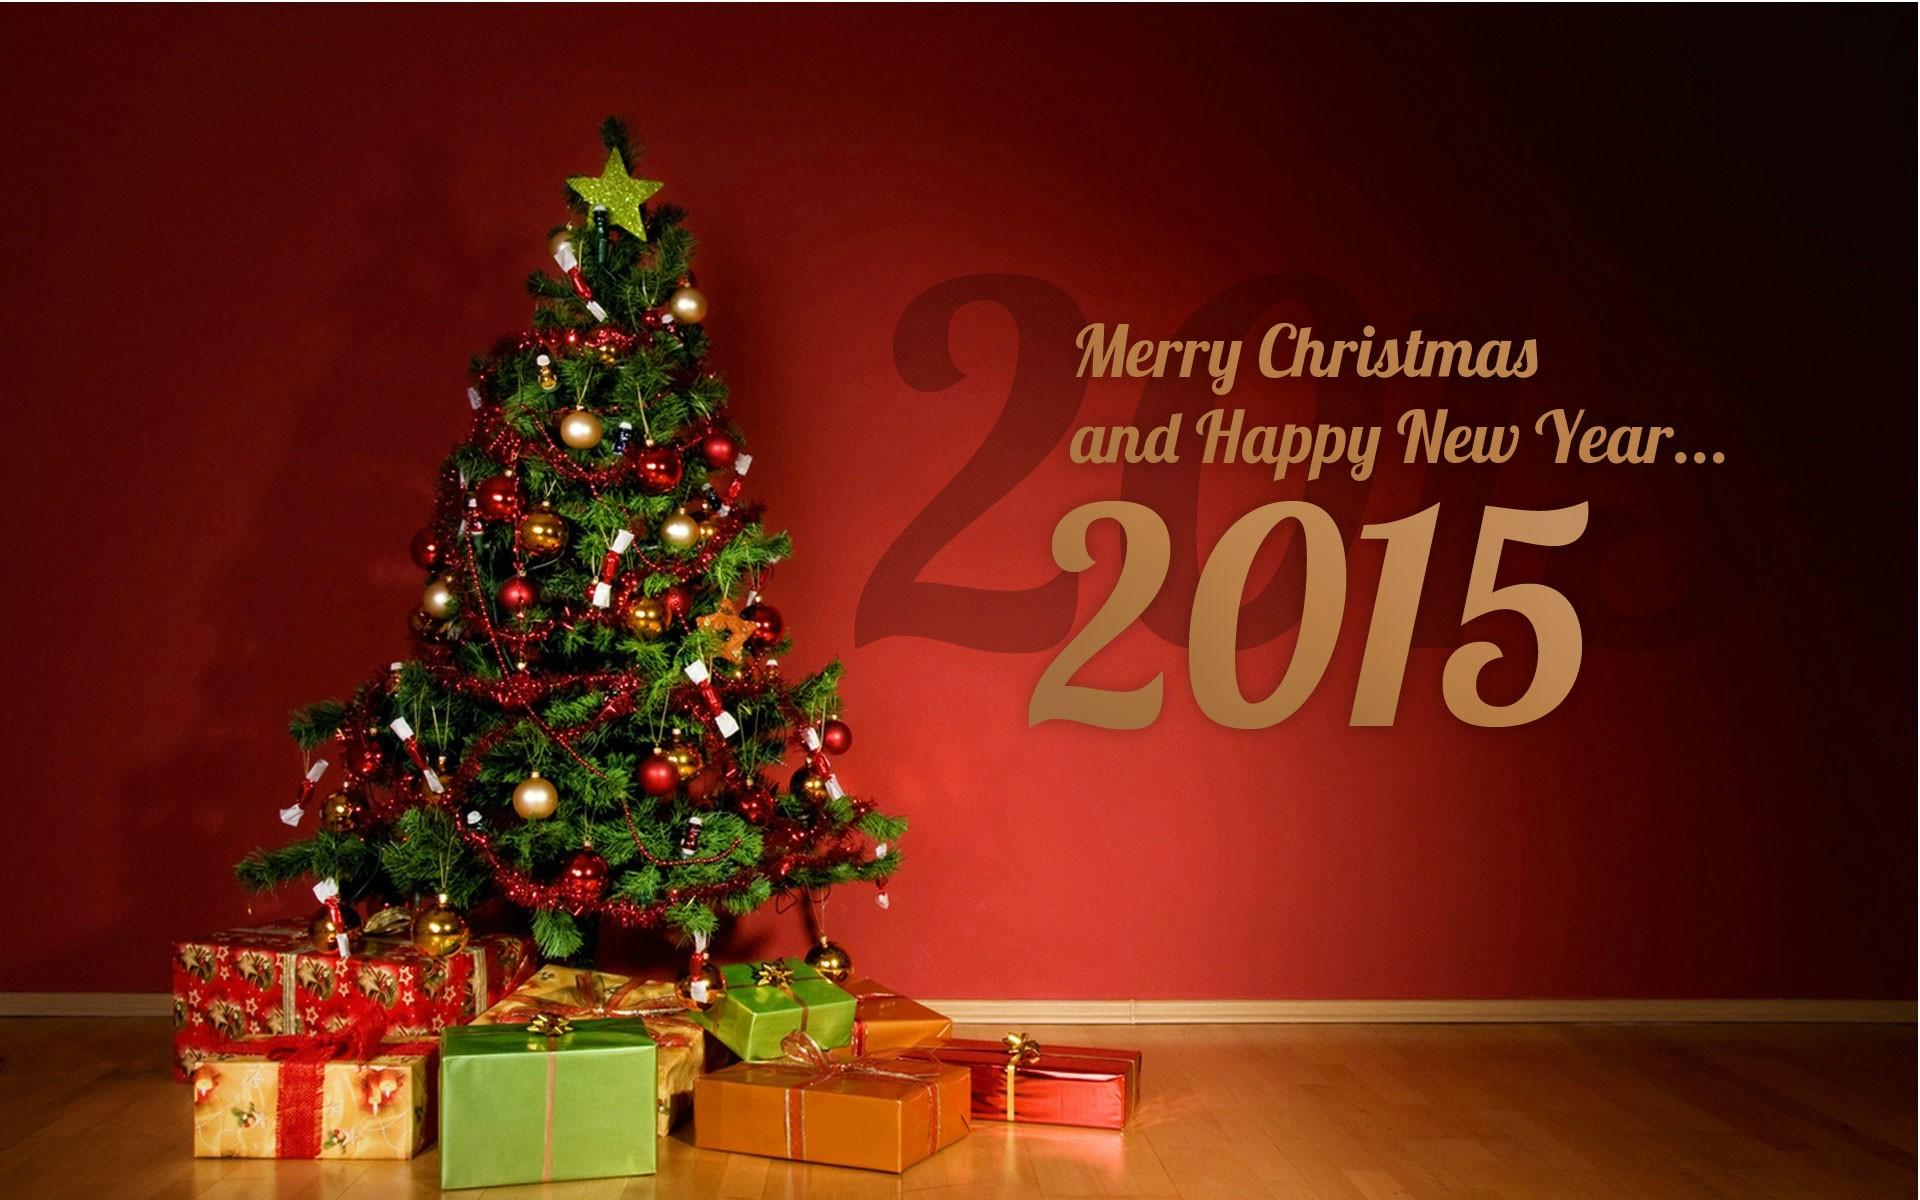 Wishing-Merry-Christmas-2015-Images-HD